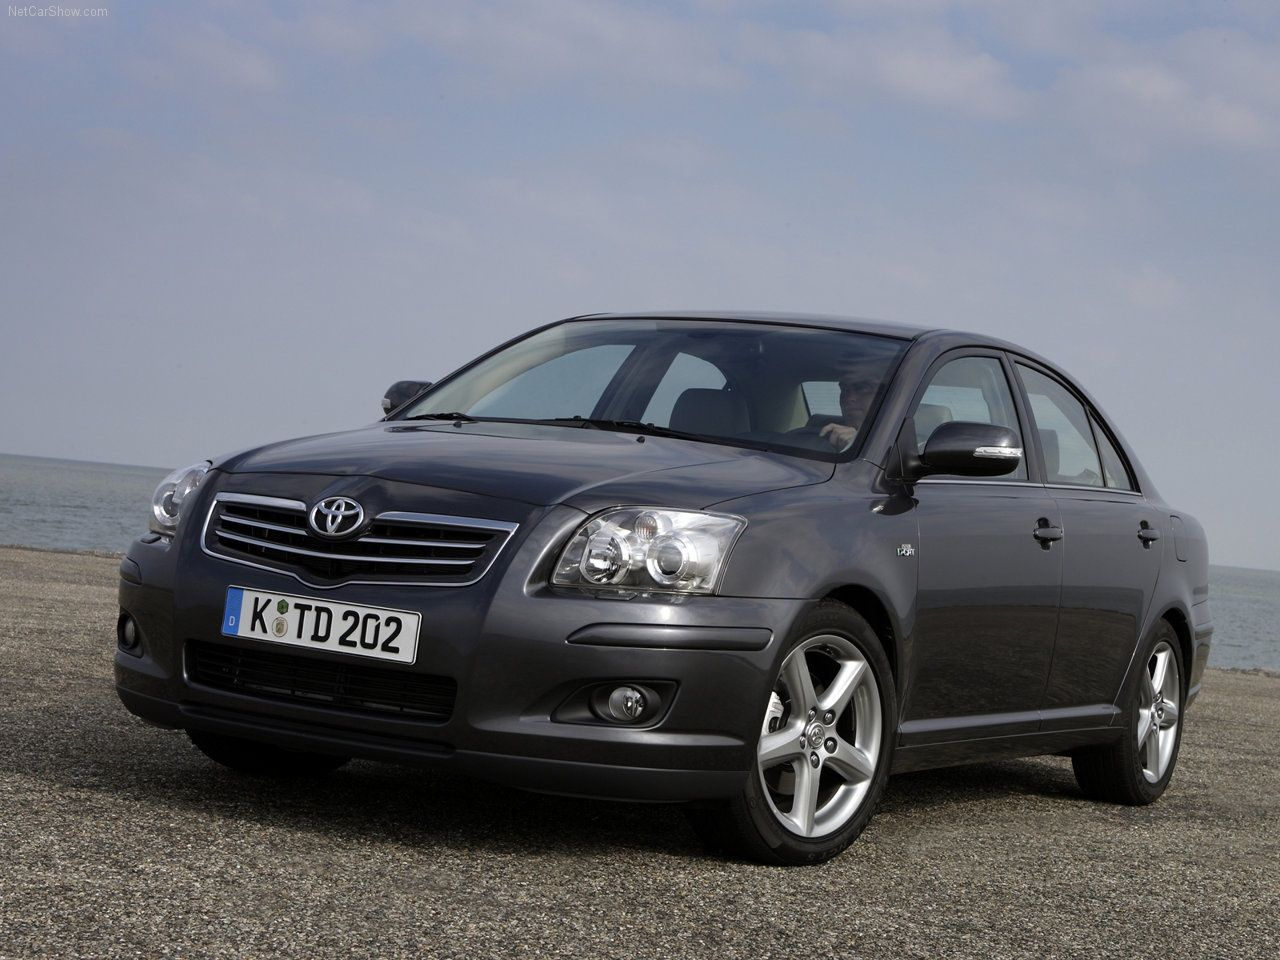 small resolution of enjoy free pdf download of 2002 2007 toyota avensis electrical wiring diagrams this